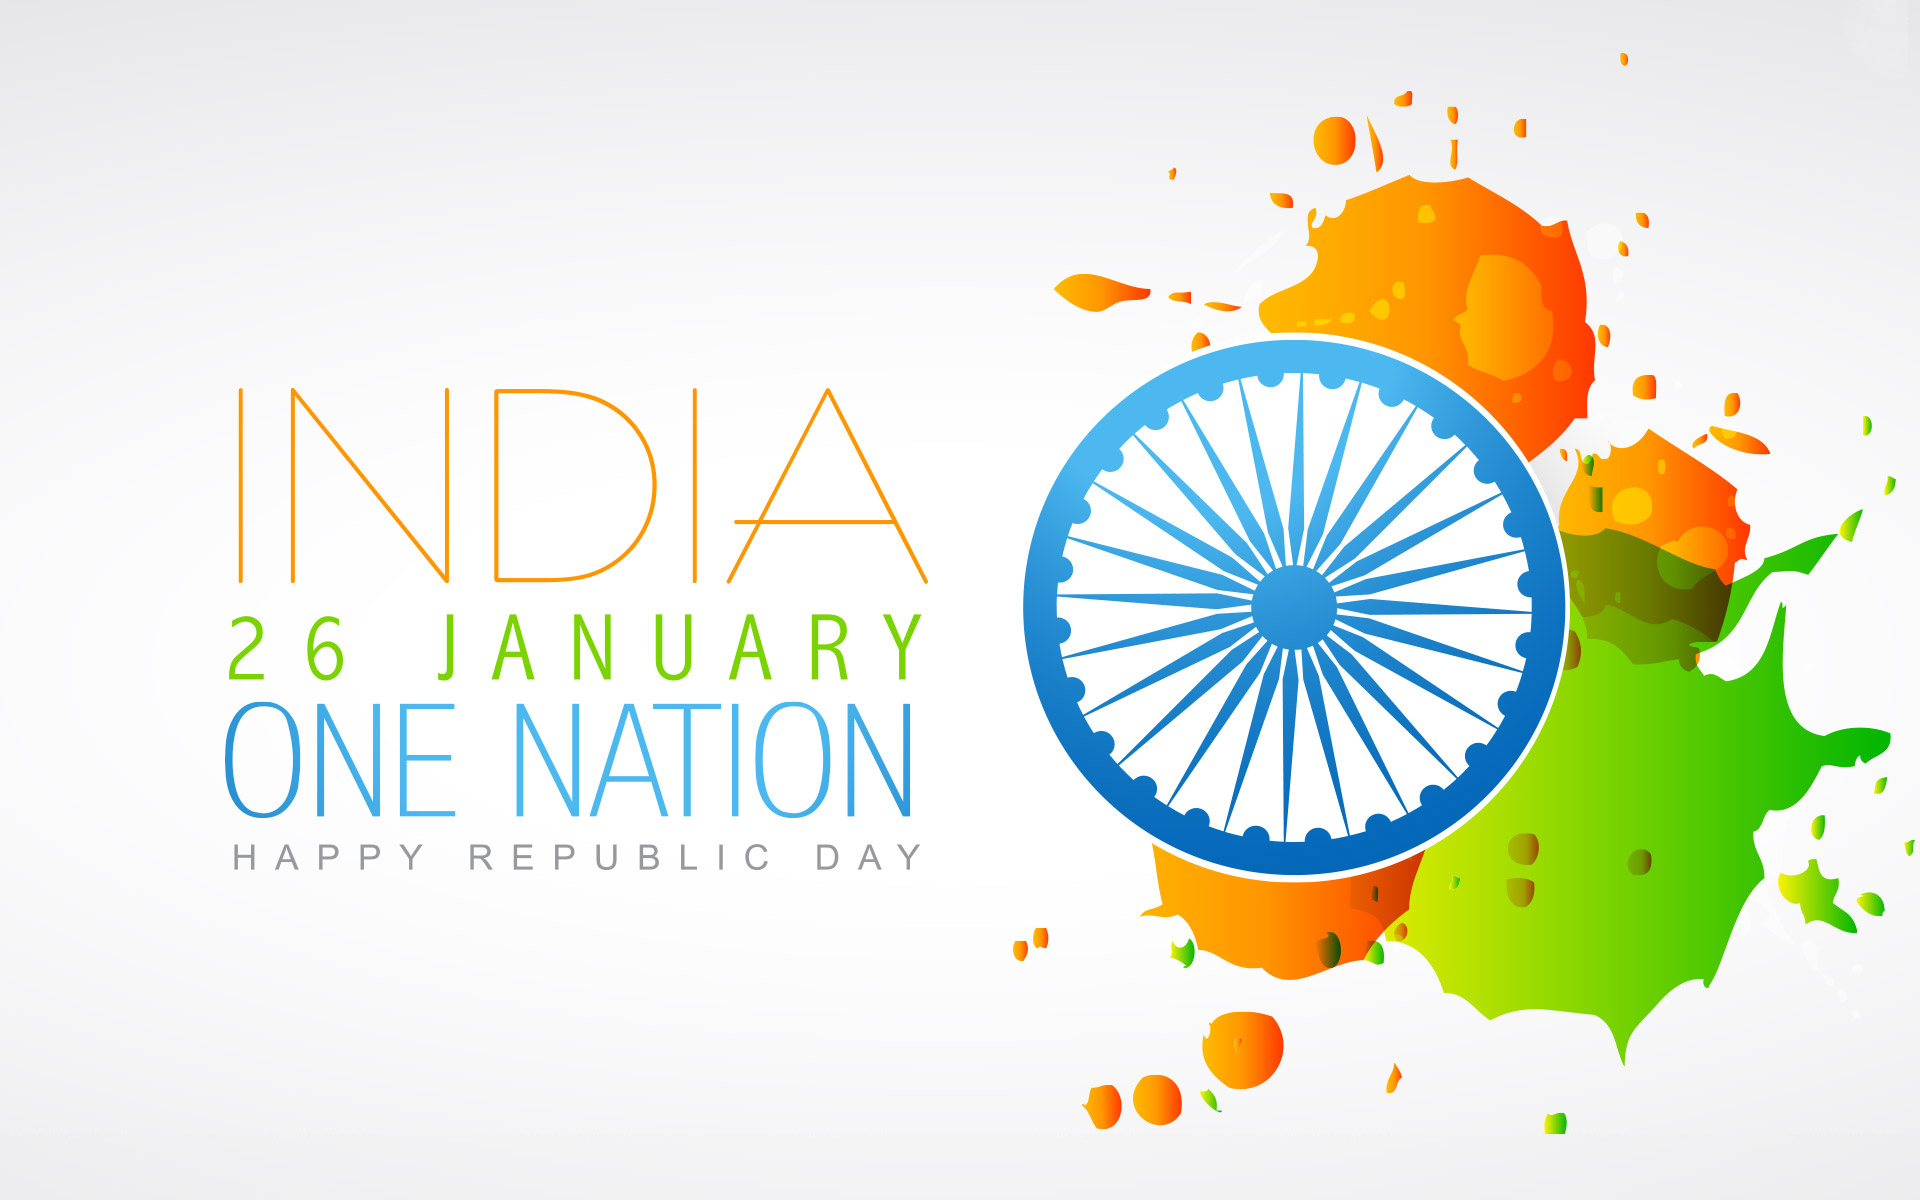 Republic Day 2020 Wallpapers